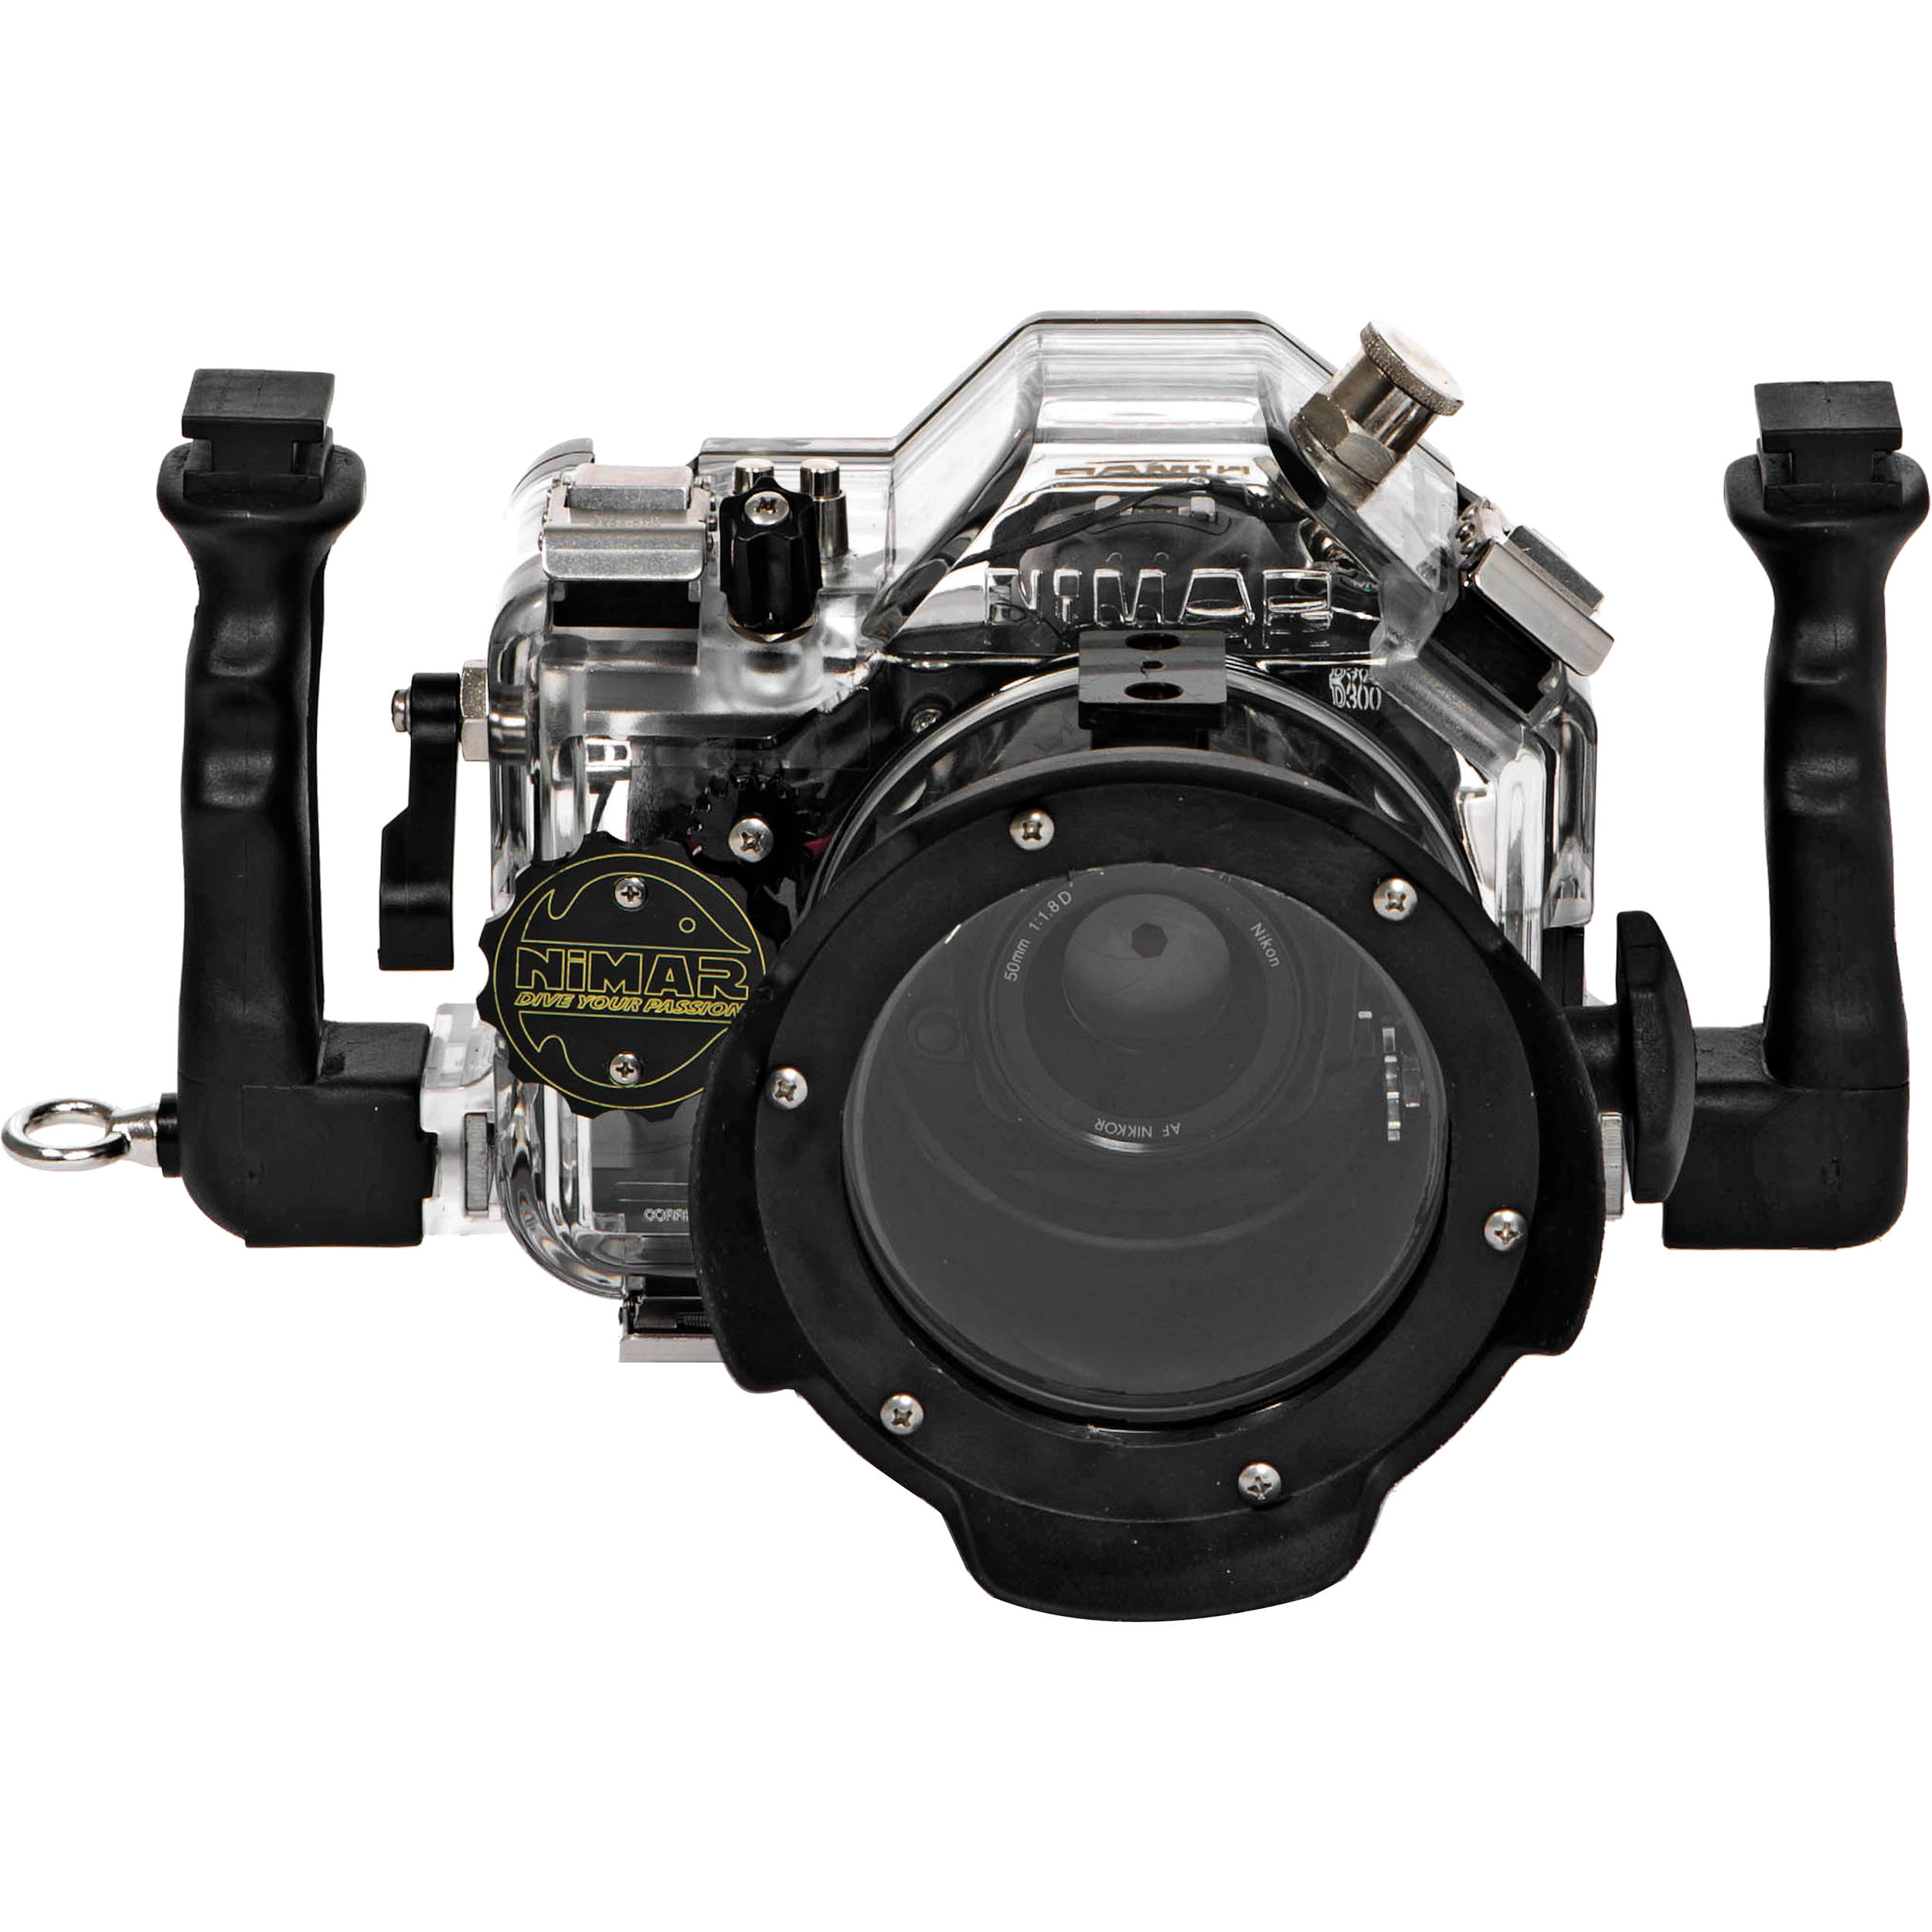 Camera Nikon D300 Dslr Camera nimar underwater housing for nikon d300 dslr camera ni303d300m shown with optional accessories